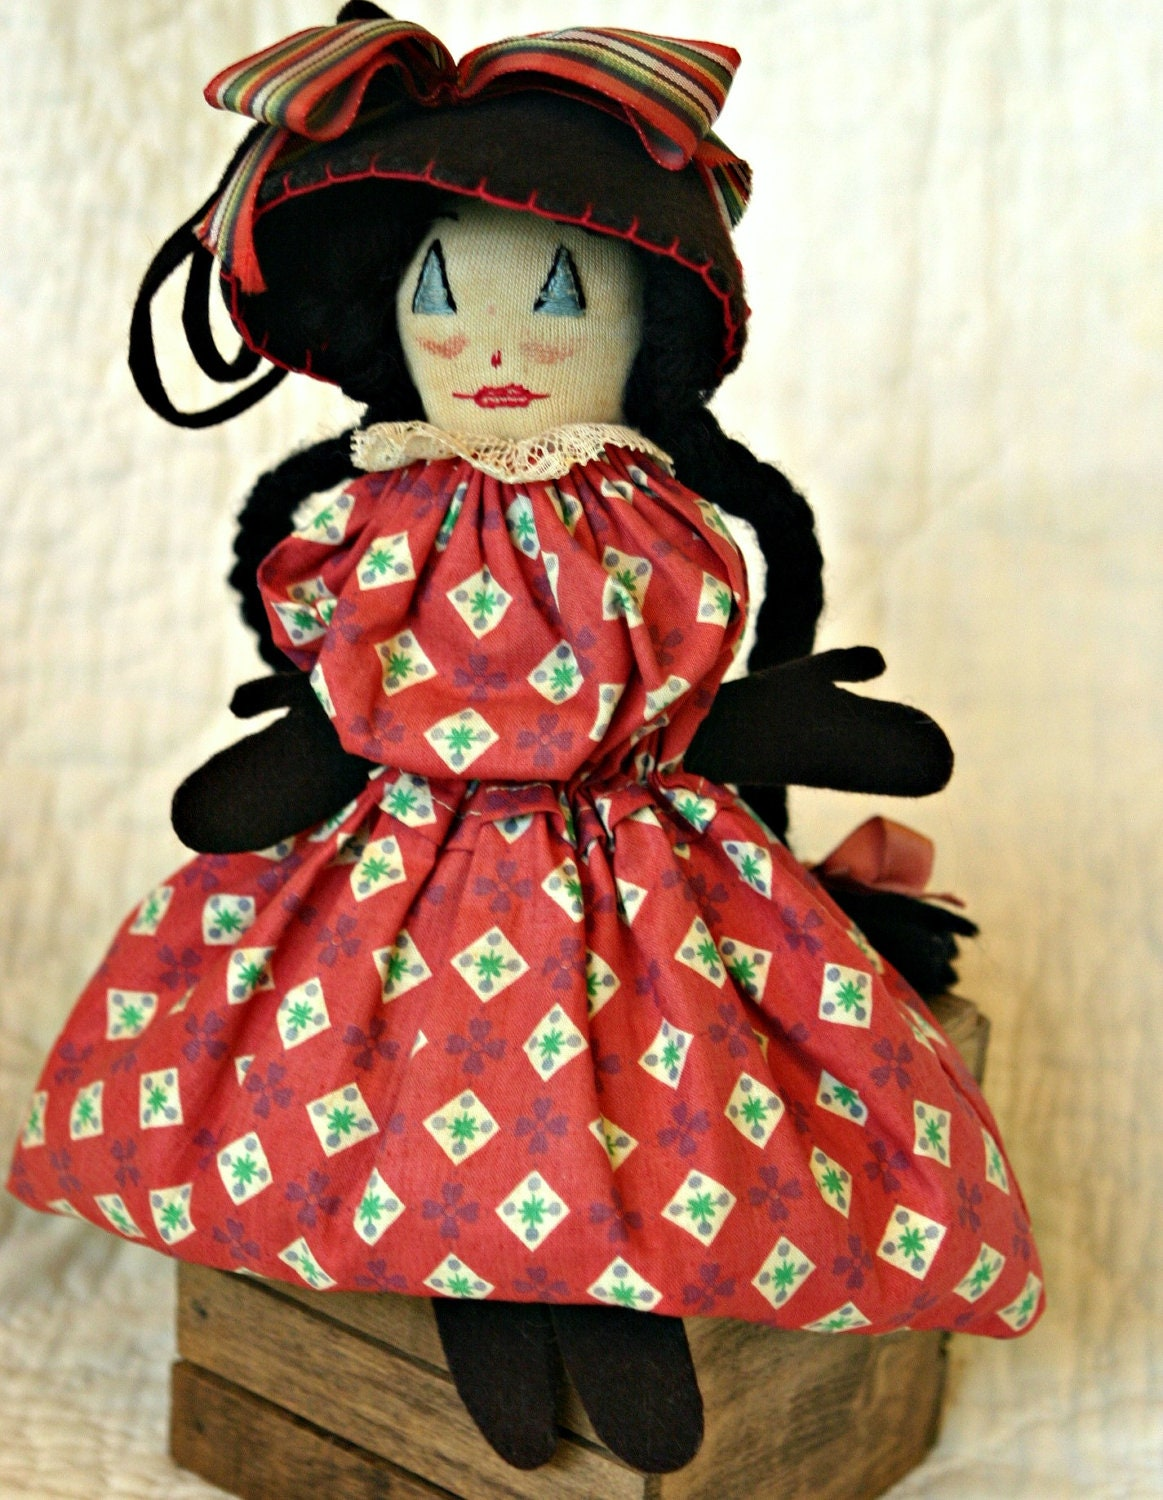 Vintage Handmade Bean Bag Rag Doll With Yarn By